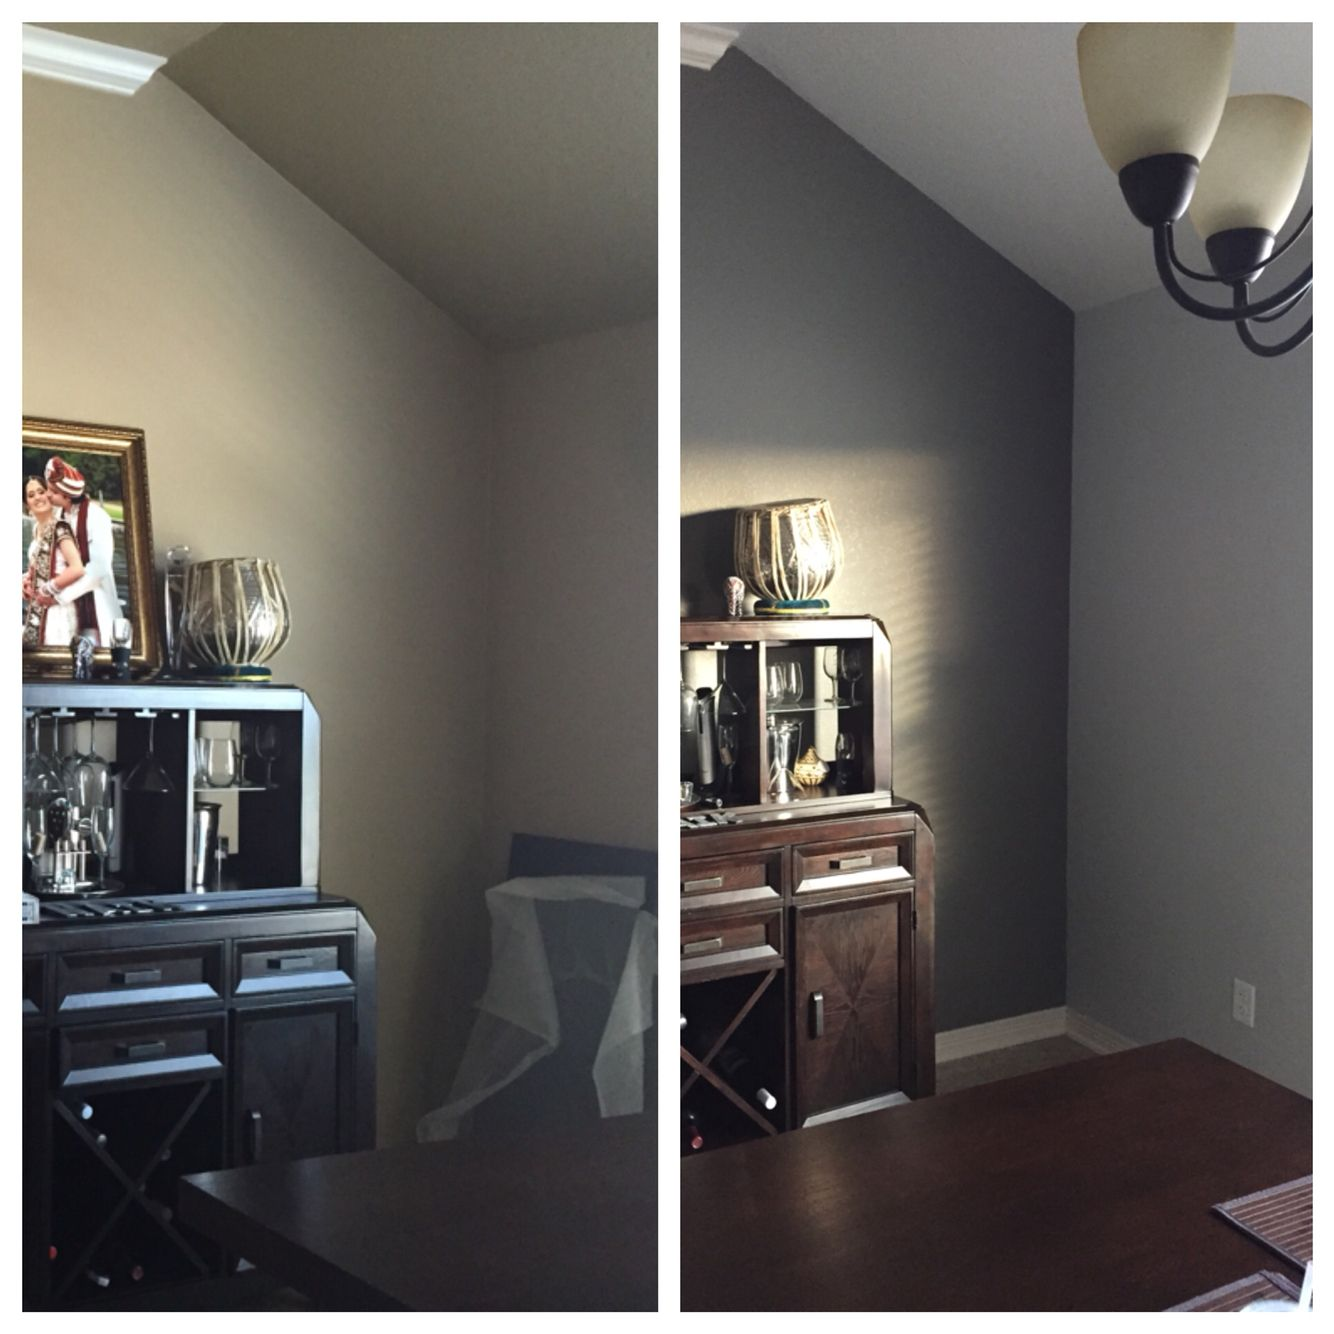 Before And After Paint Paint Is Sw Tinsmith Sw Extra White Sw Gauntlet Gray Home Decor Home Decor